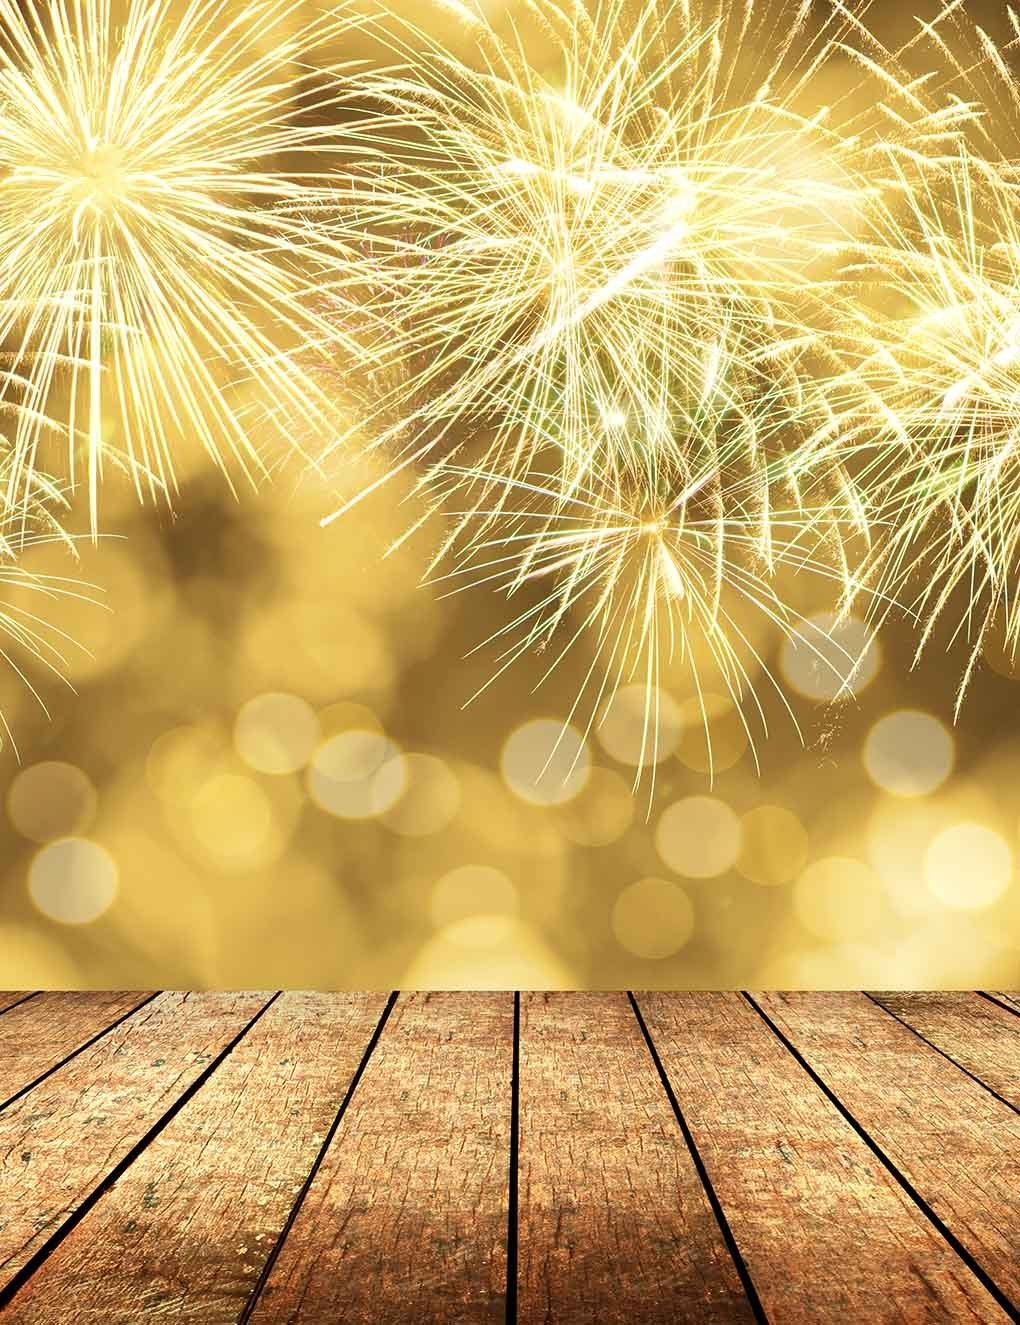 Fireworks Canary Yellow Bokeh Background For Christmas